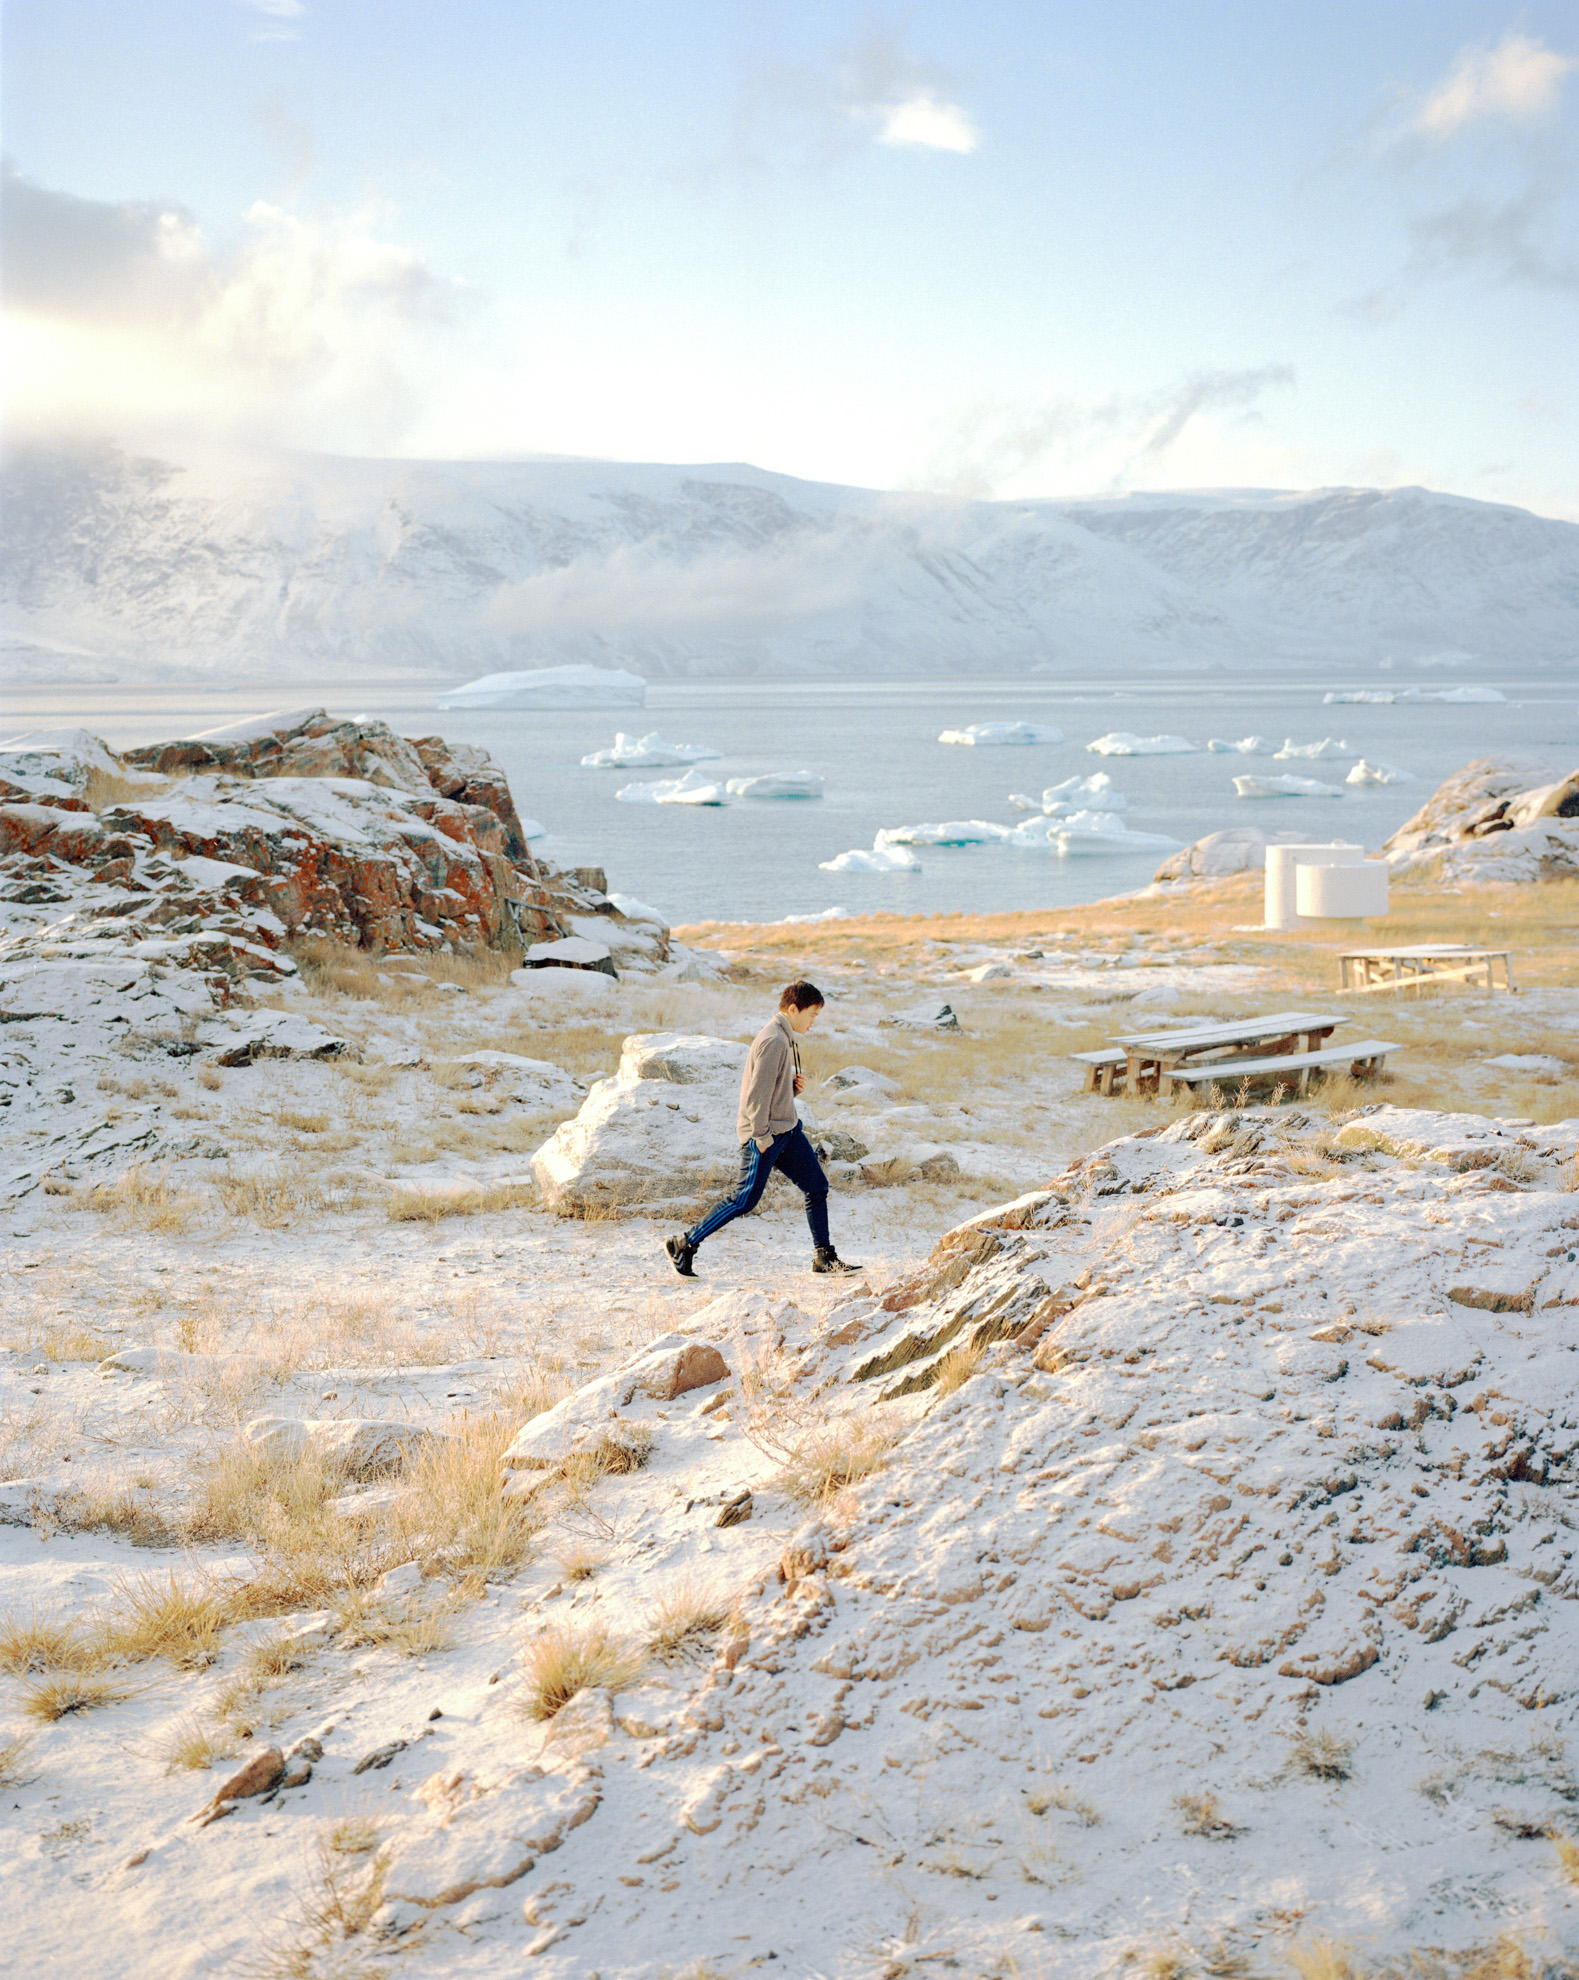 A young boy is walking through a winter landscape in one of the abandoned settlements around Uummannaq which is now used by the Uummannaq children's home to get kids away from daily routines or bad habits like smoking for some weeks. Greenland's remote landscape can be stunning and beautiful.